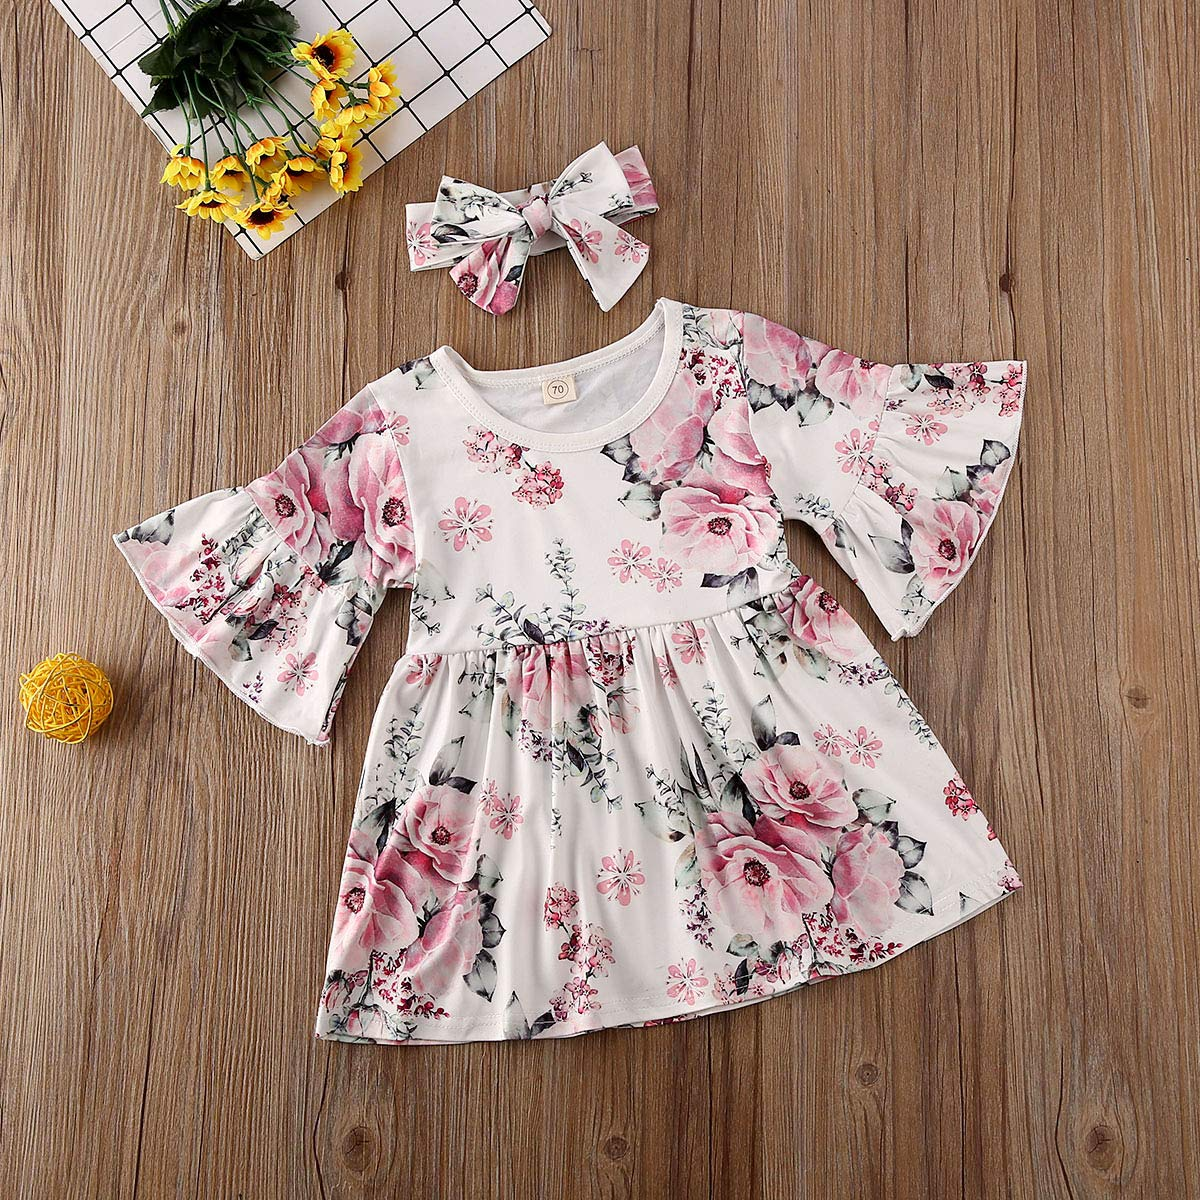 Toddler Kids Baby Girl Ruffle 3//4 Long Flare Sleeve Floral Party Dresses Clothes